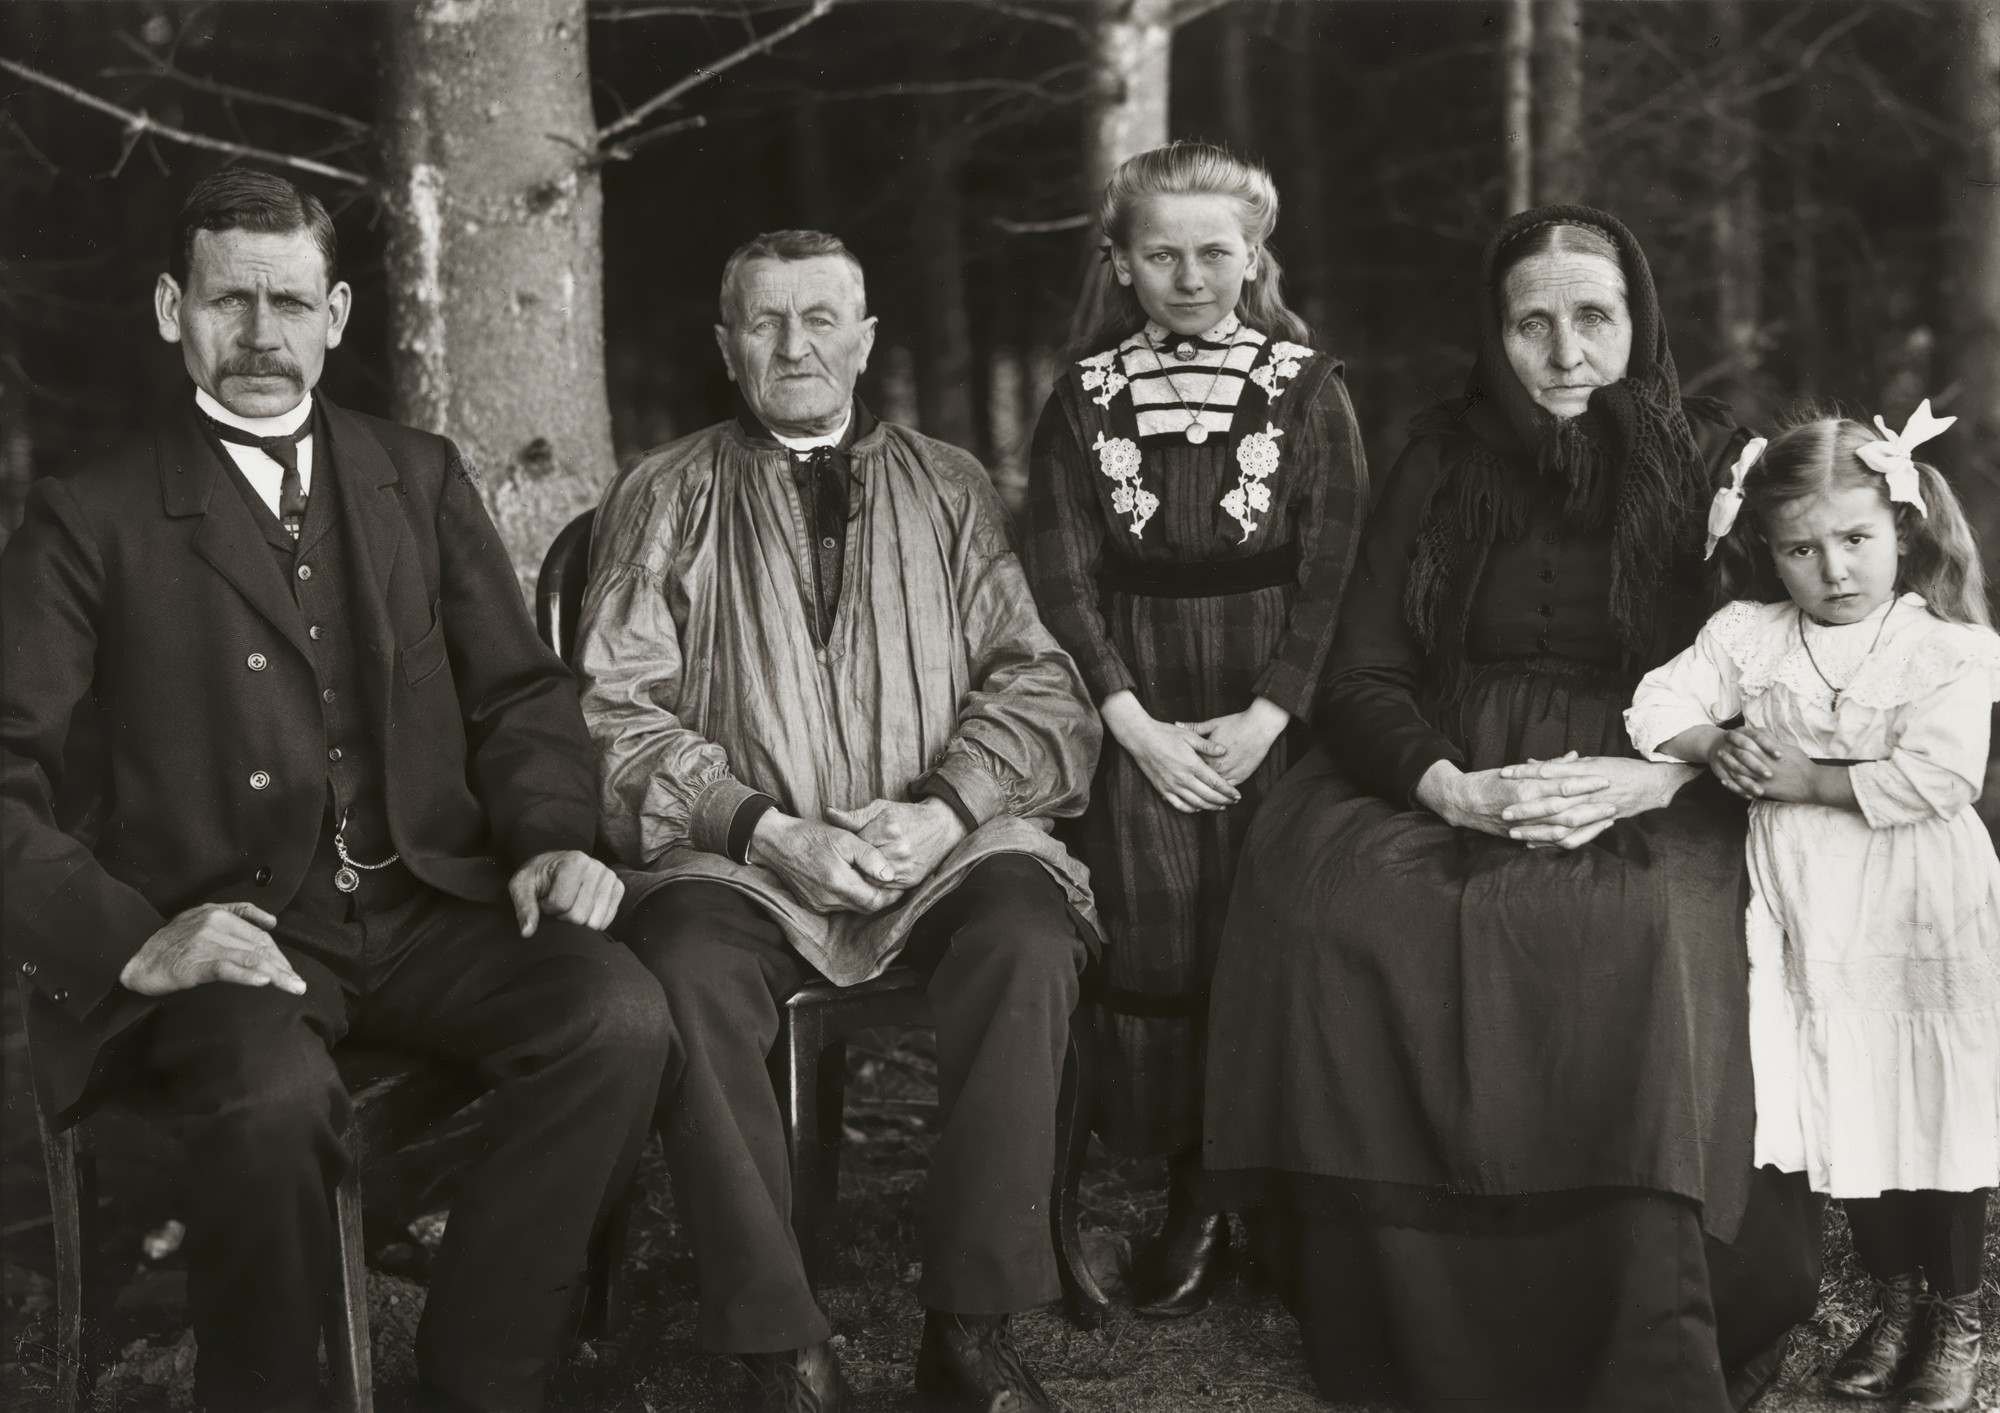 August Sander. Three Generations of the Family. 1912